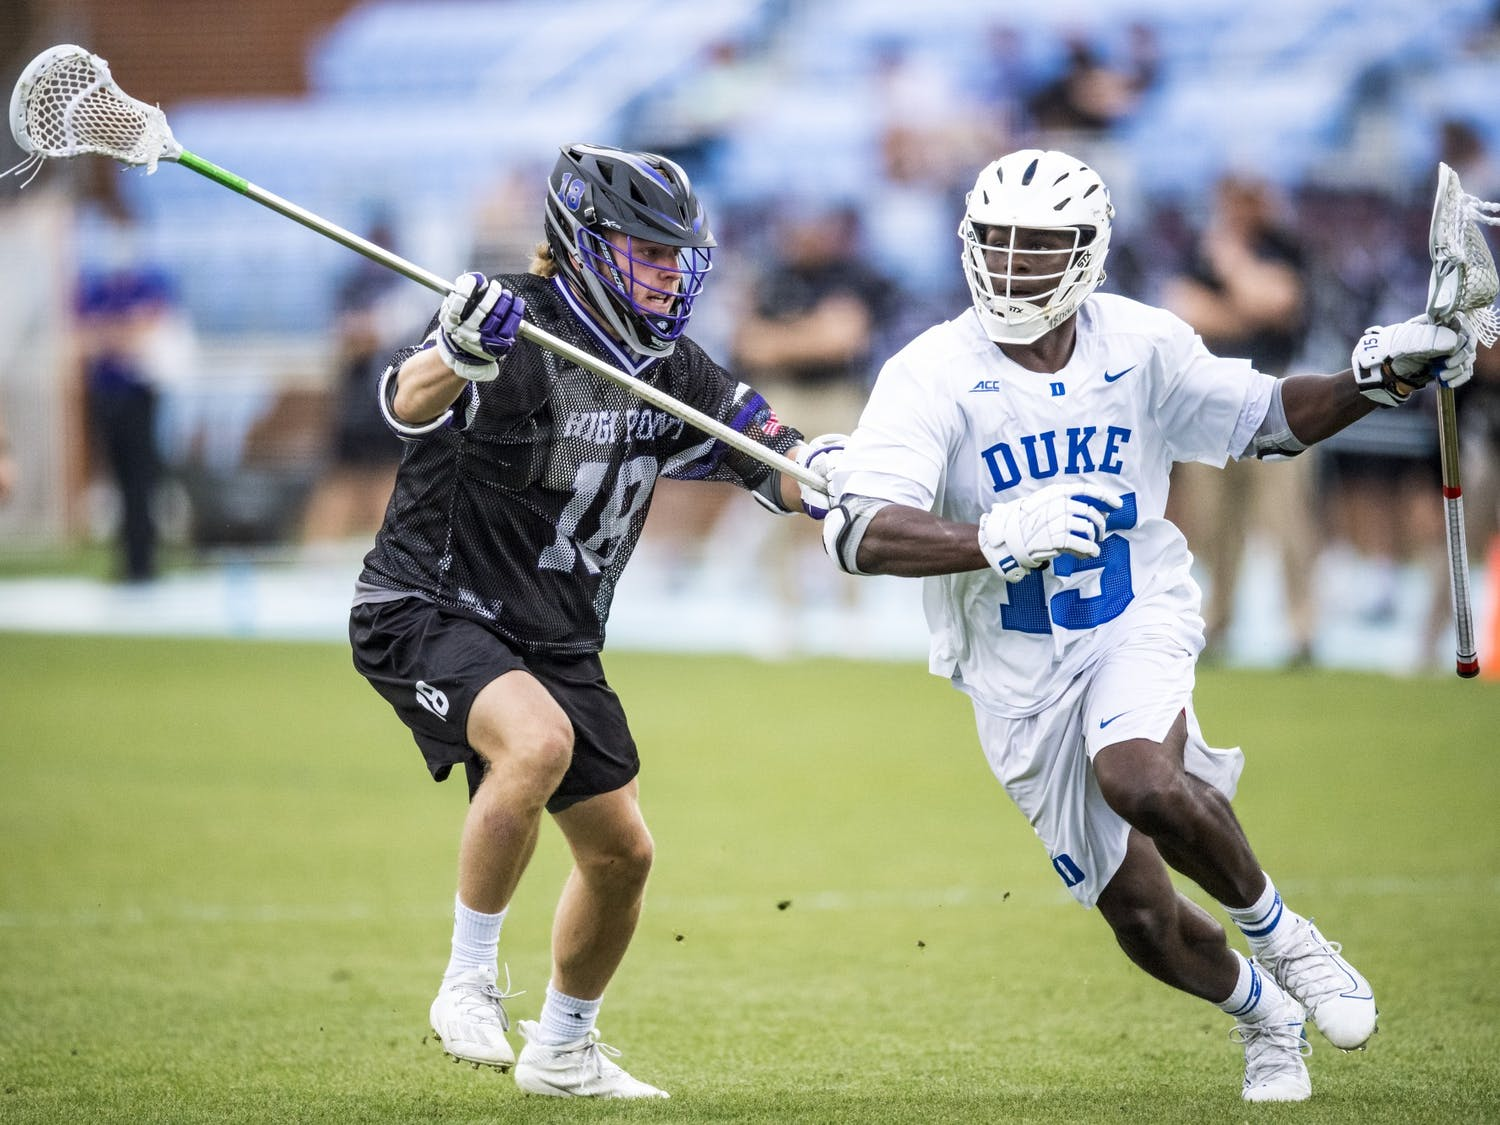 The Blue Devils, while not error-free, are now moving on to the quarterfinals of the NCAA Tournament.